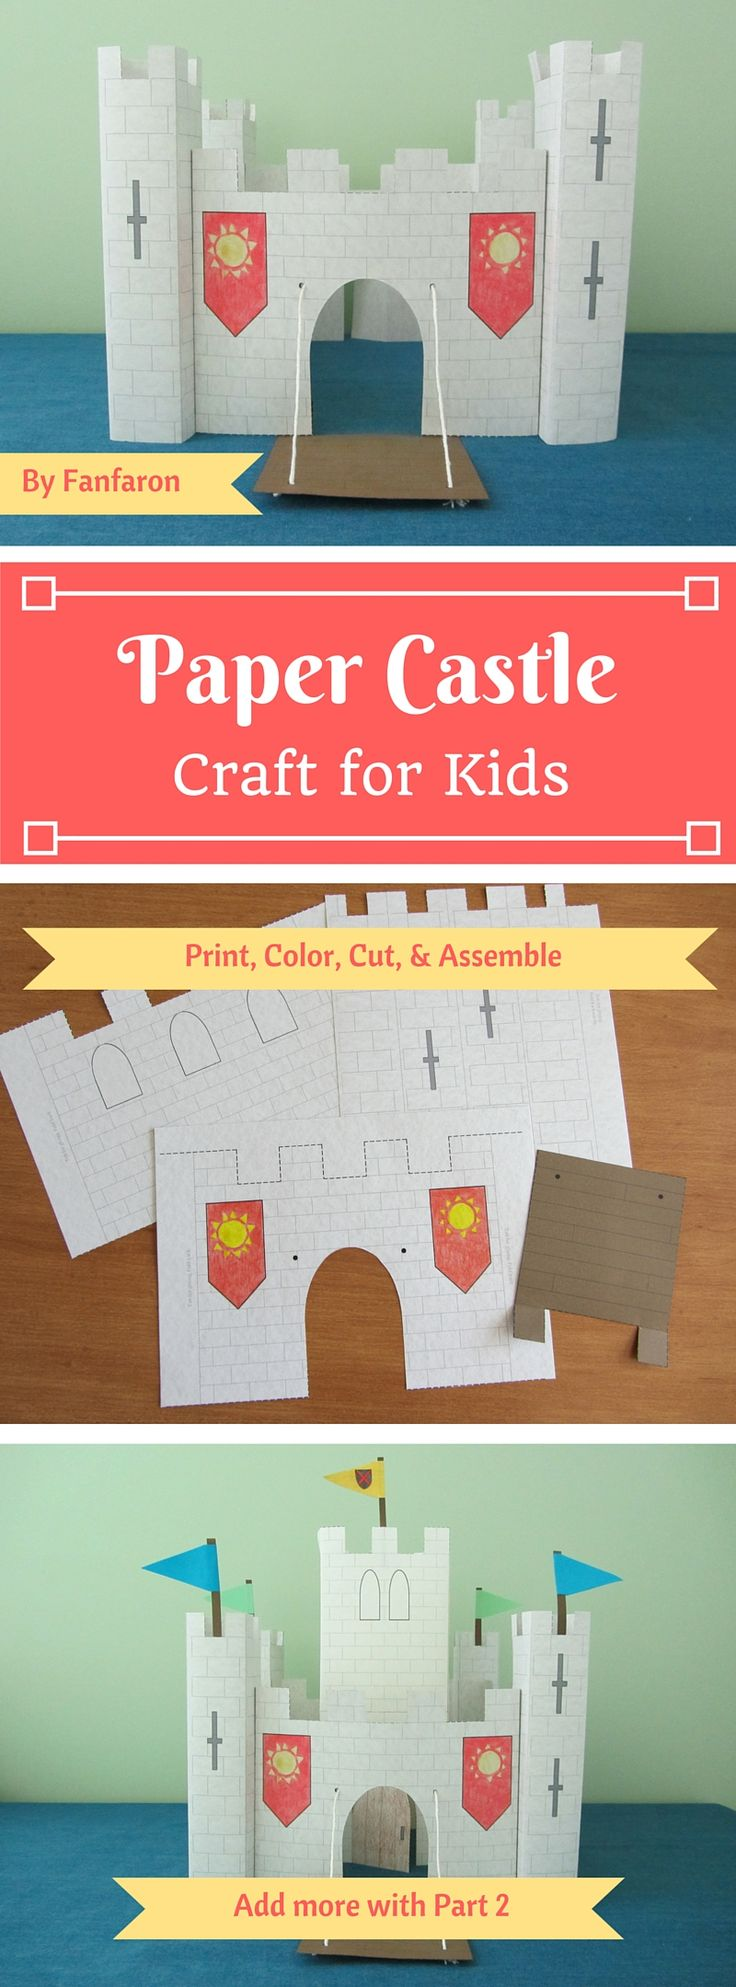 Creare un castello medioevale di carta - Make a medieval castle out of paper! Simply purchase the template, print it from your home computer, and start crafting. Watch the video instructions on YouTube to see how it's done! www.youtube.com/c/fanfaronbylaura If you're feeling ambitious, purchase part 2 to add a central keep and flags to your project.